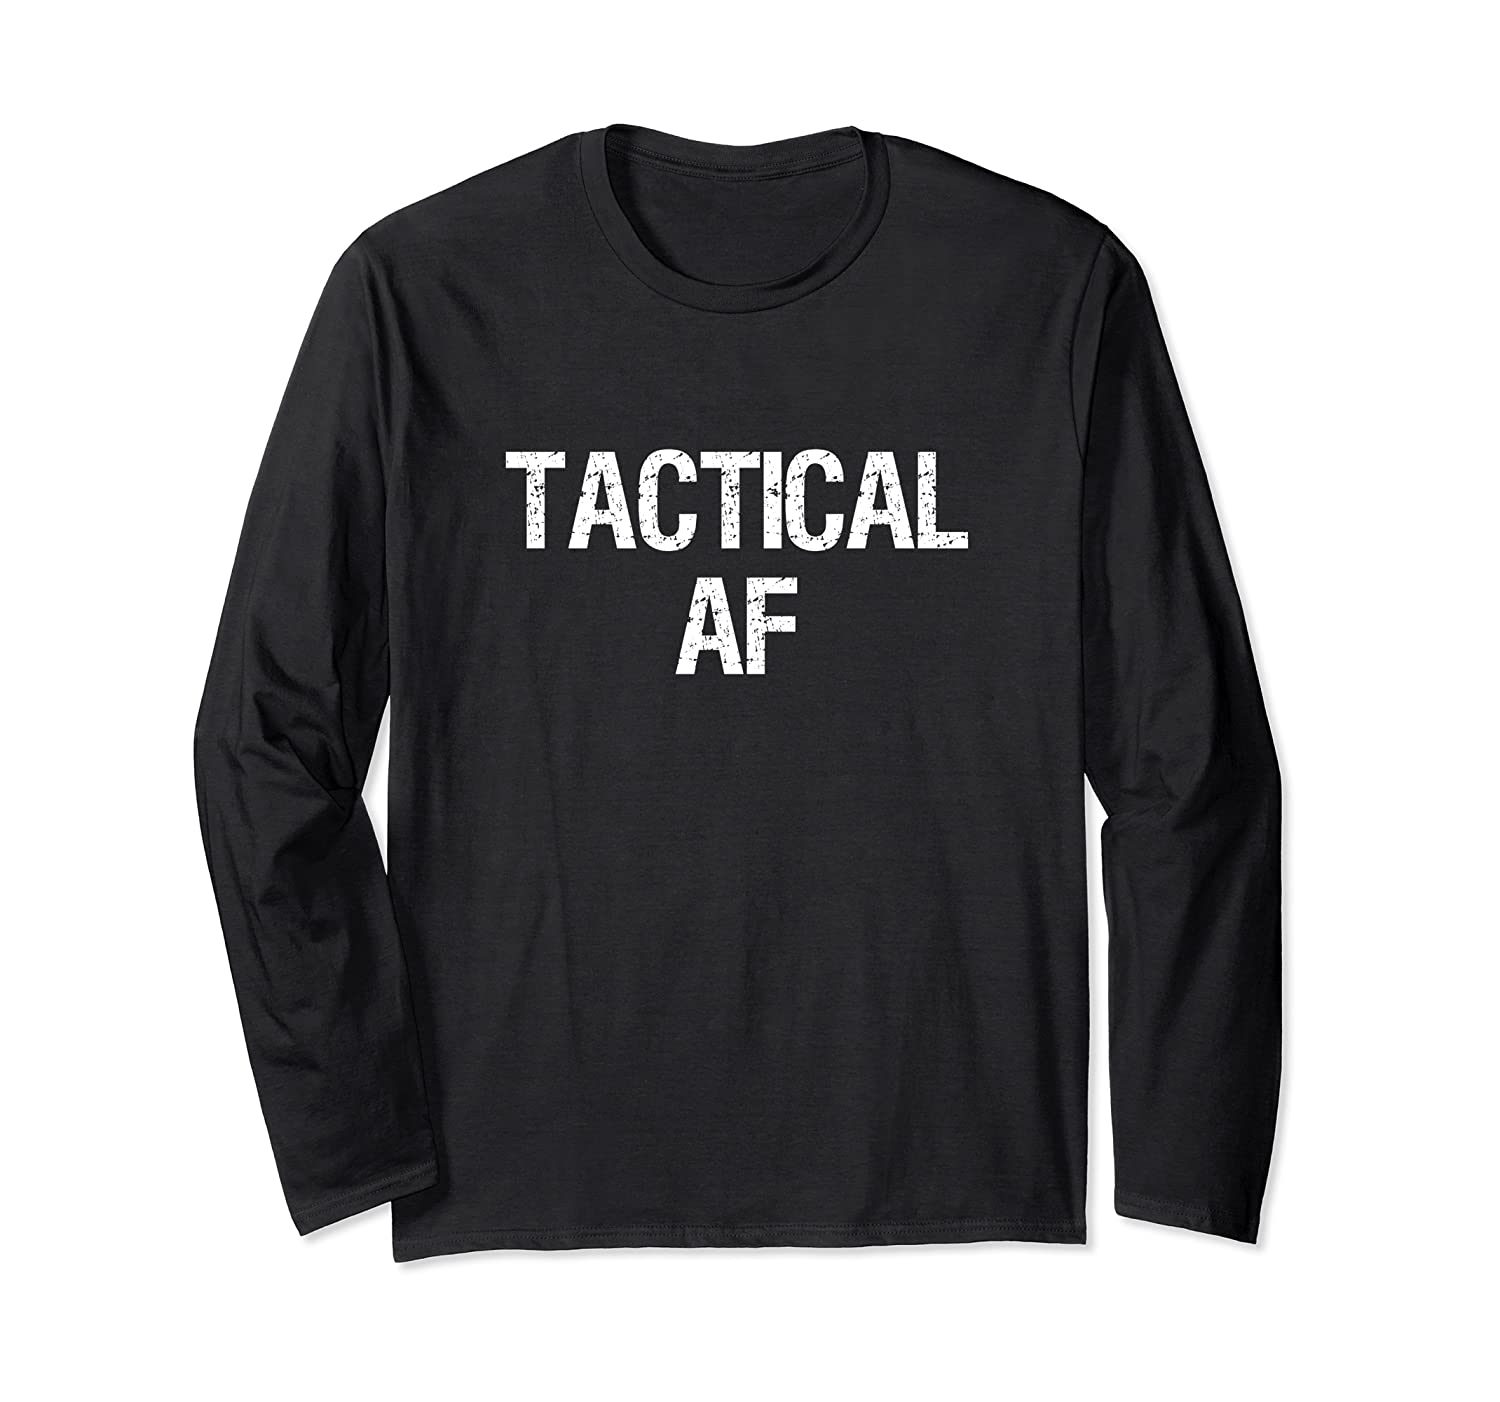 Tactical Af Military Army Operator Police Shirt Long Sleeve T-shirt